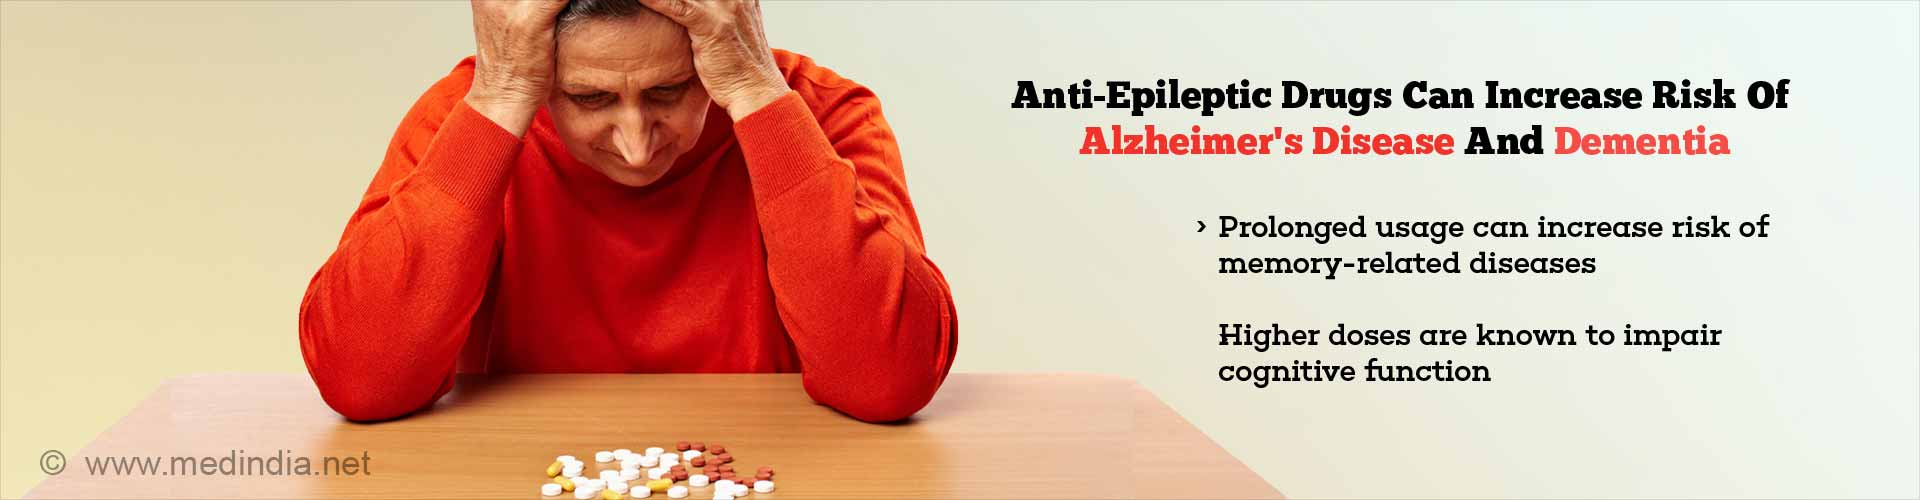 Prolonged Use of Anti-Epileptic Drugs Can Increase the Risk of Dementia